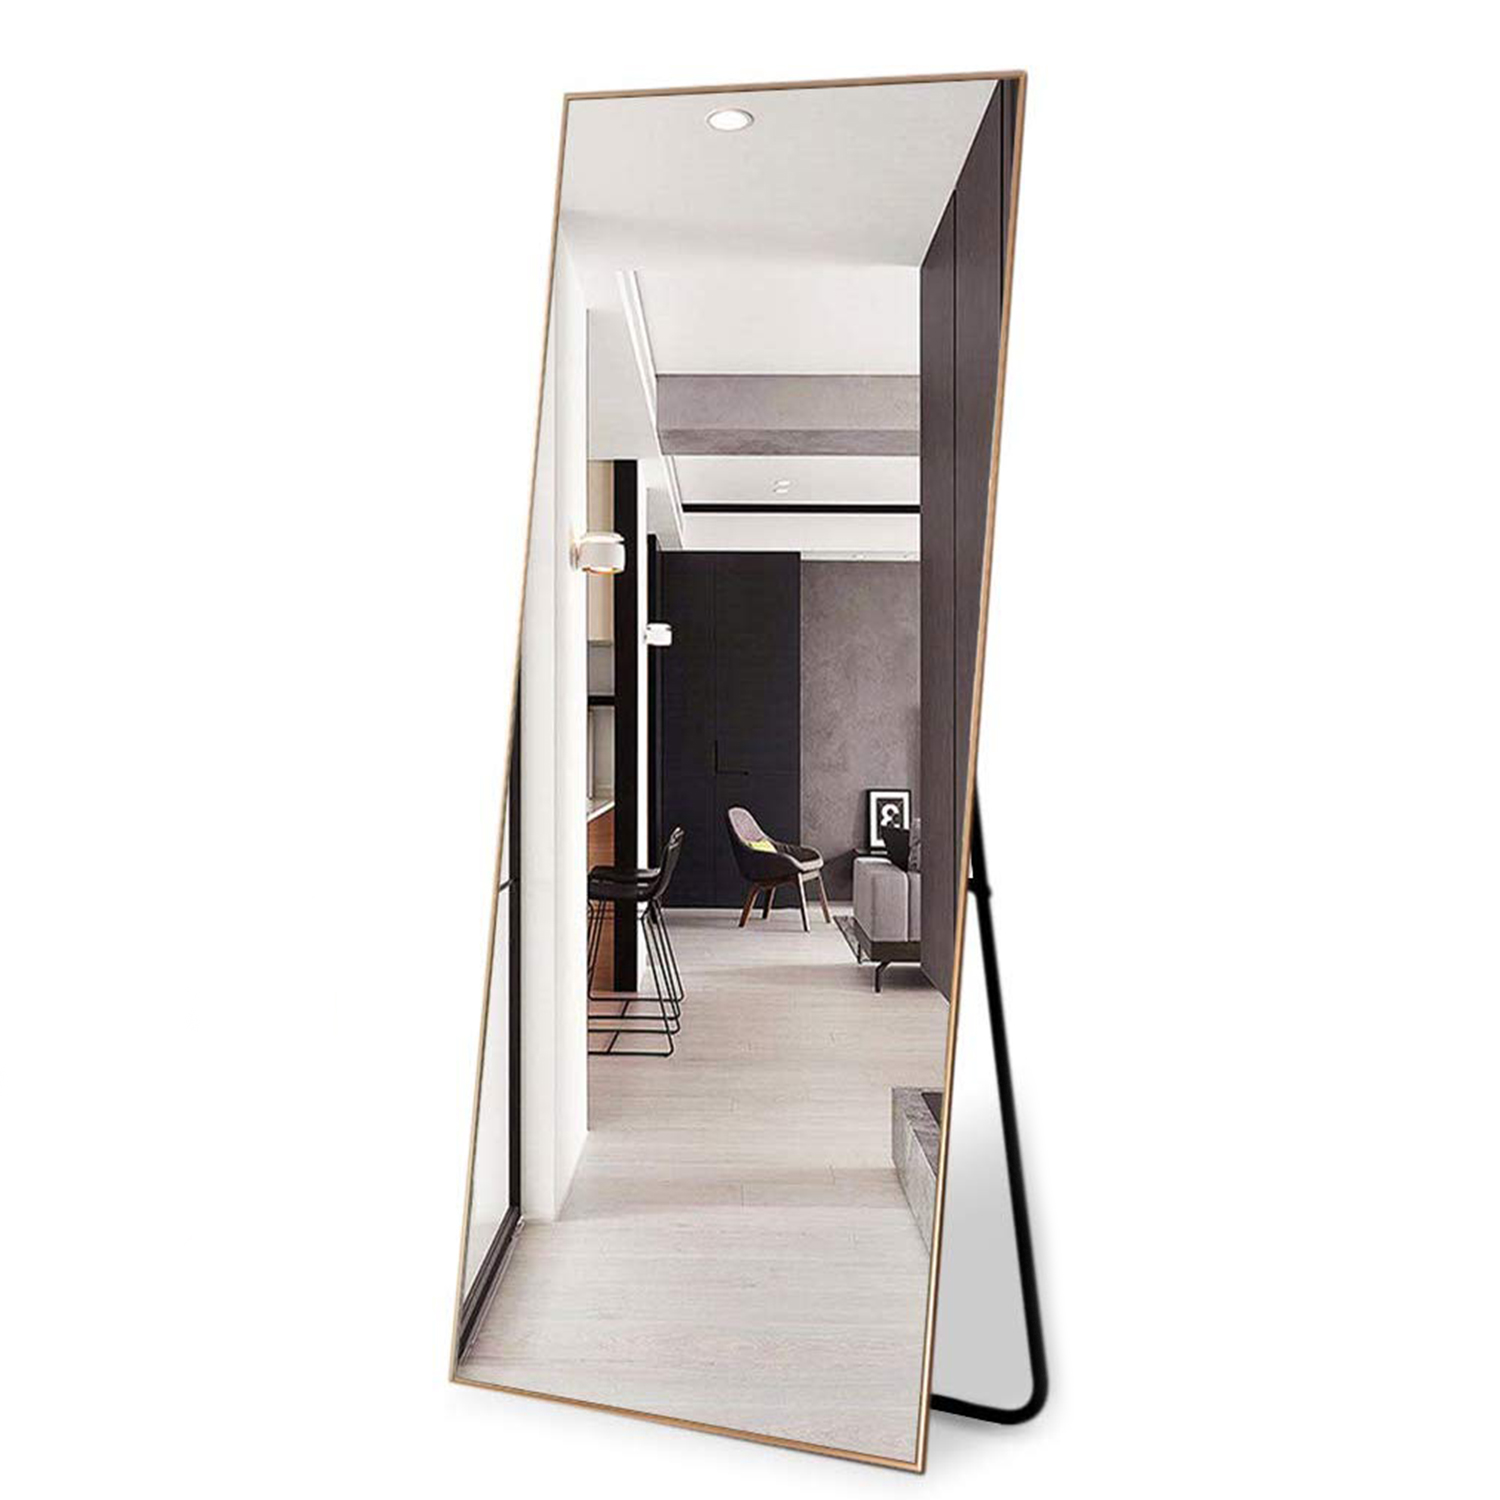 NeuType Full Length Mirror Standing Hanging or Leaning Against Wall